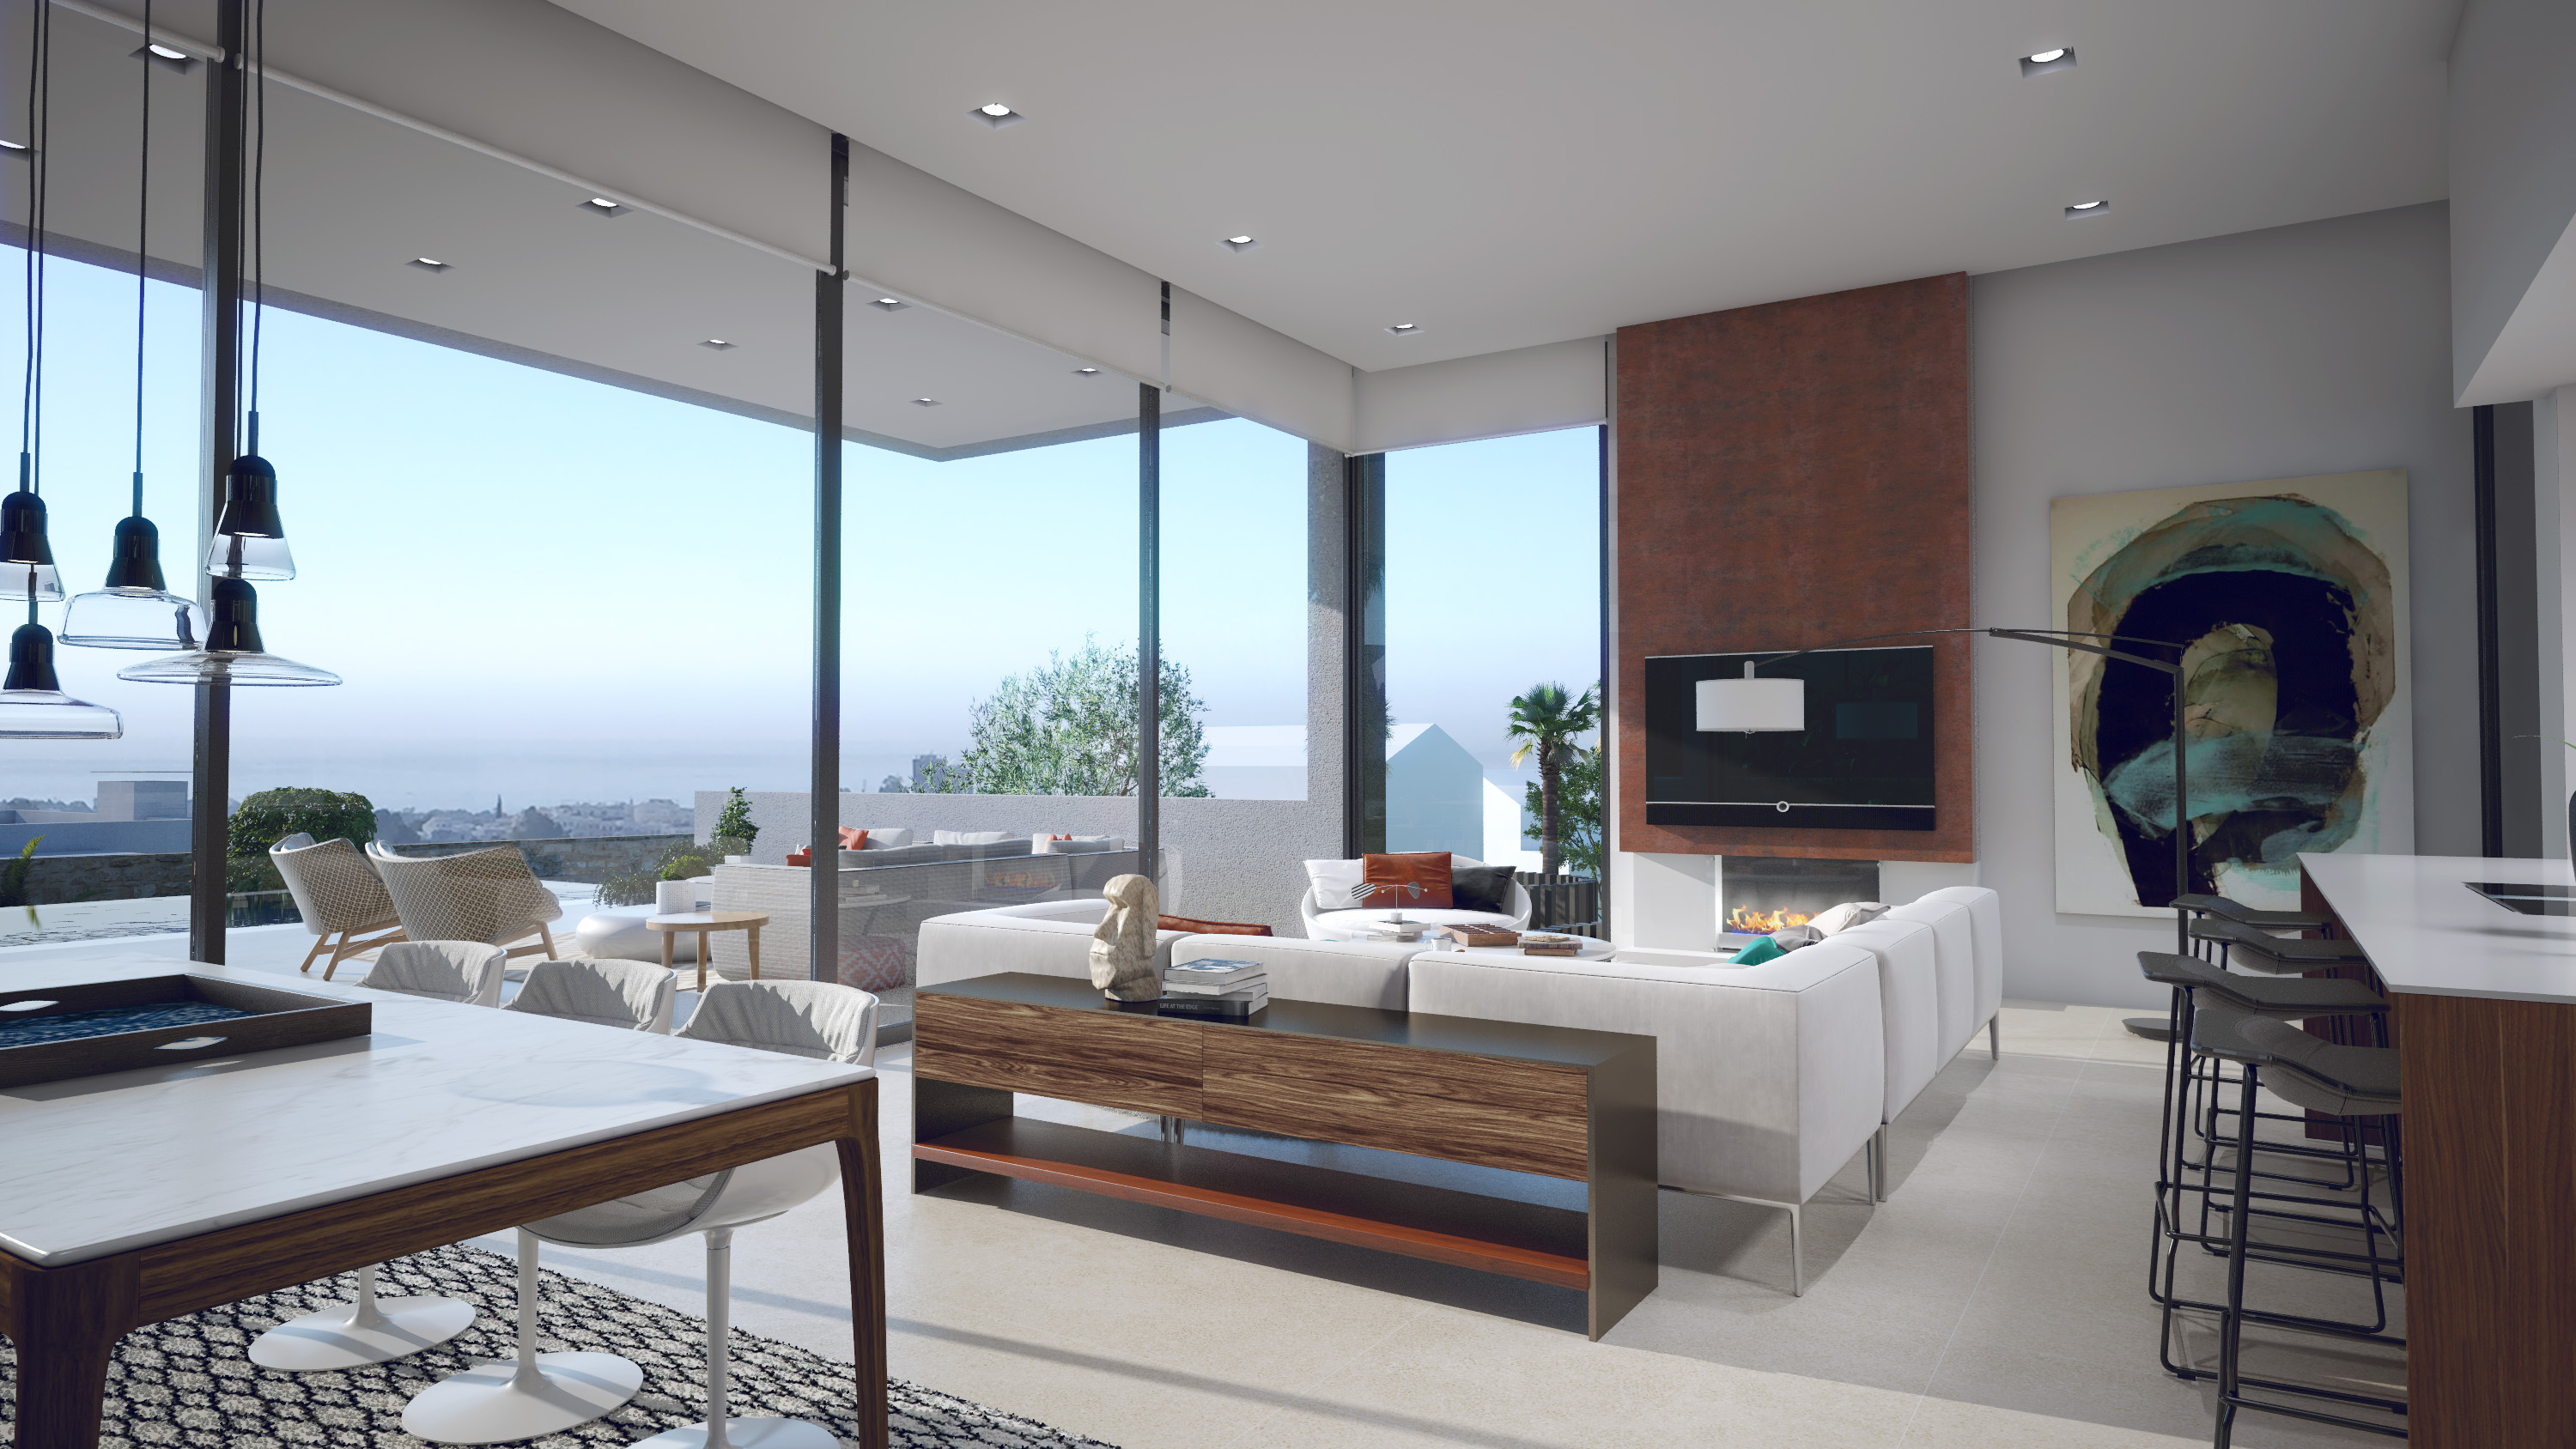 Living area with floor-to-ceiling windows